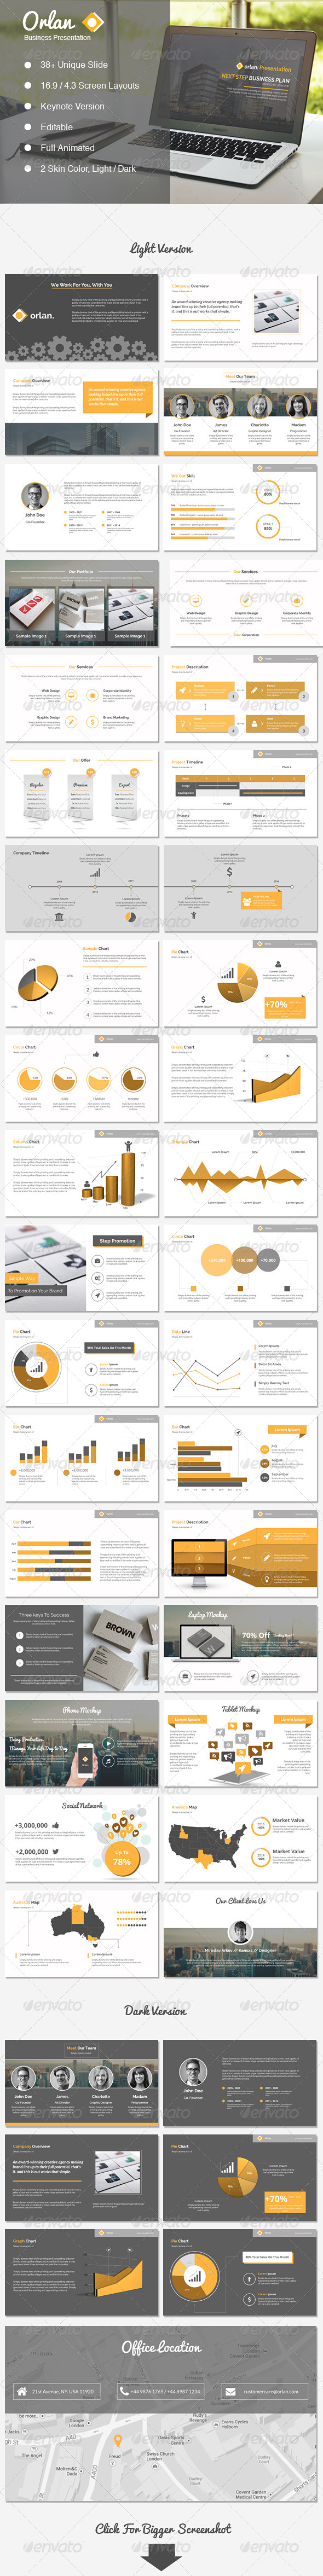 GraphicRiver Orlan Keynote Business Presentation 8545775